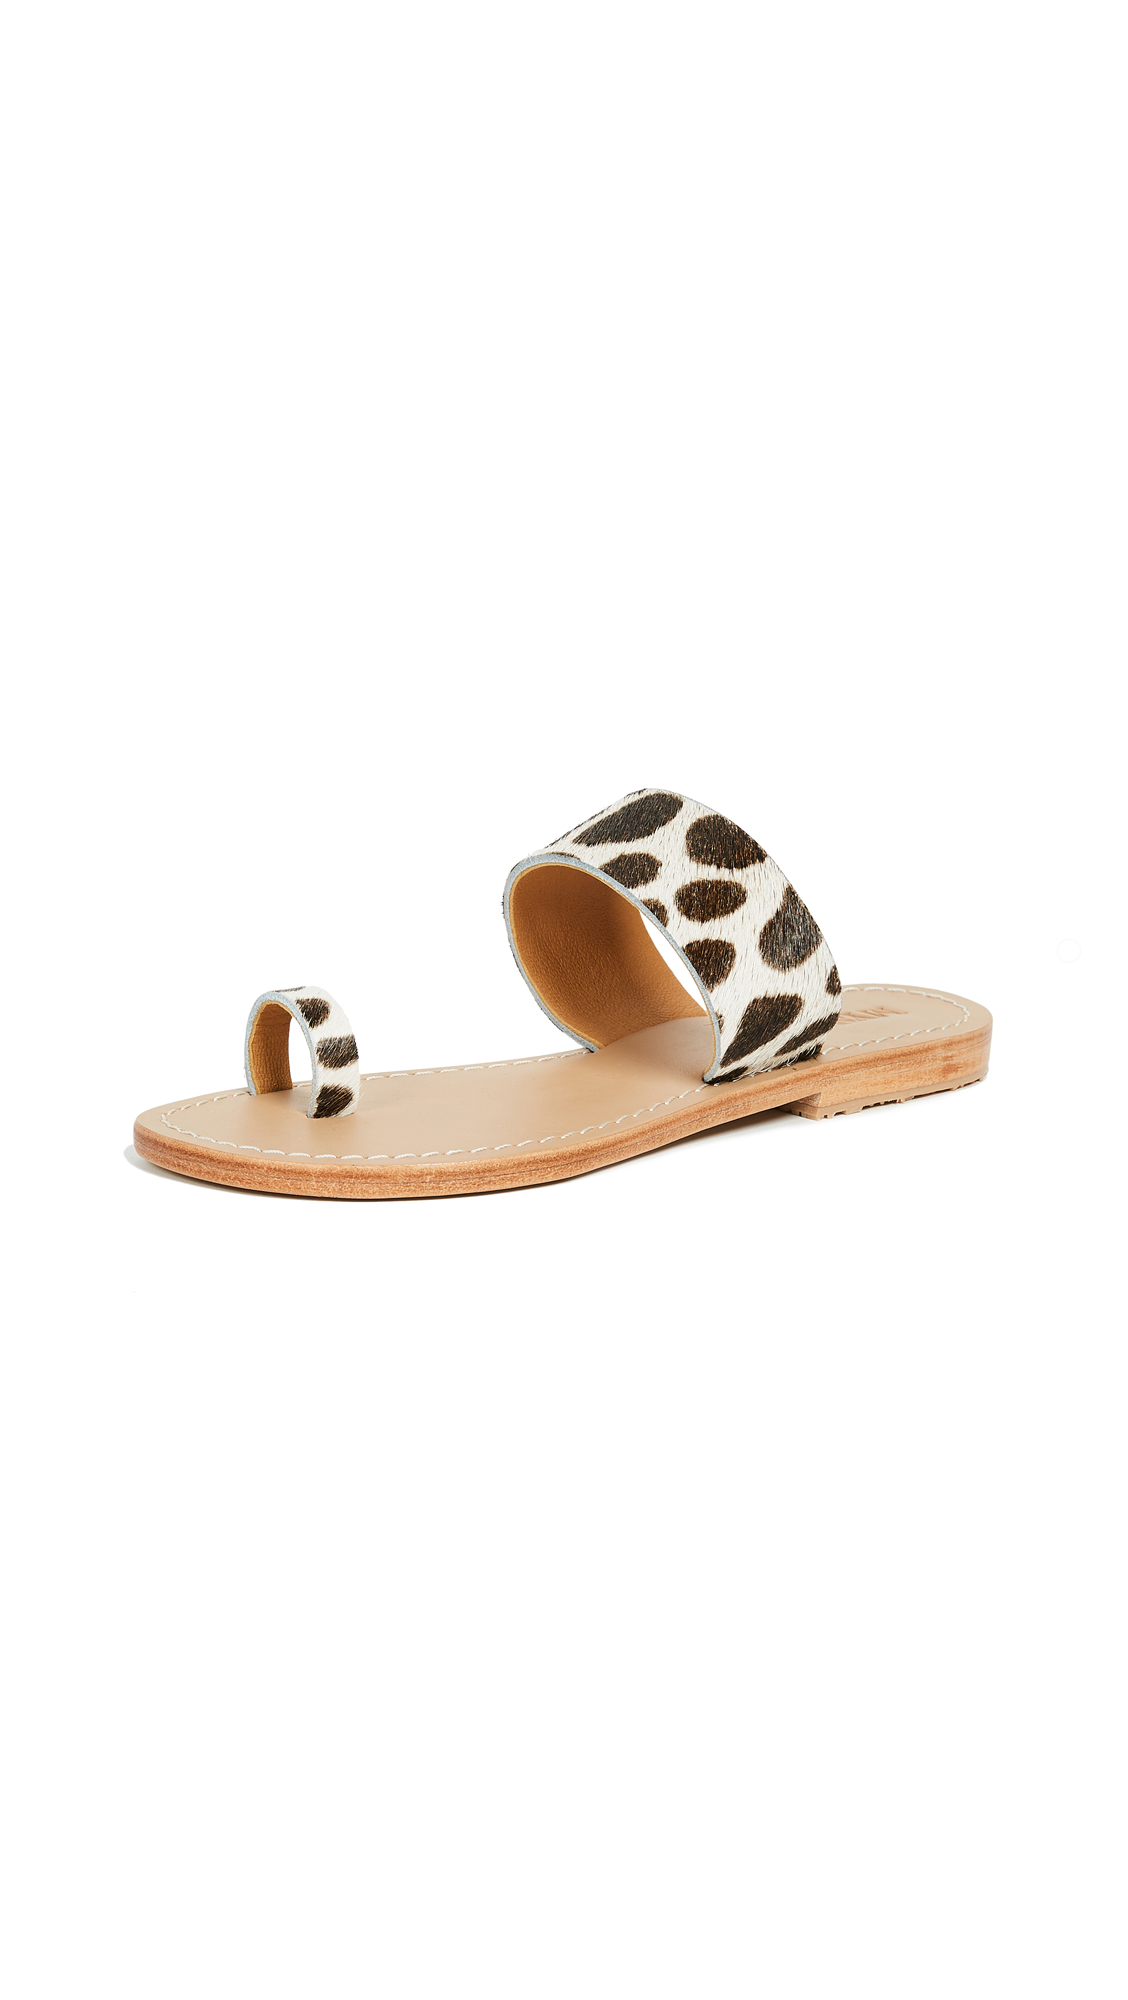 Mystique Toe Ring Sandals - Cheetah